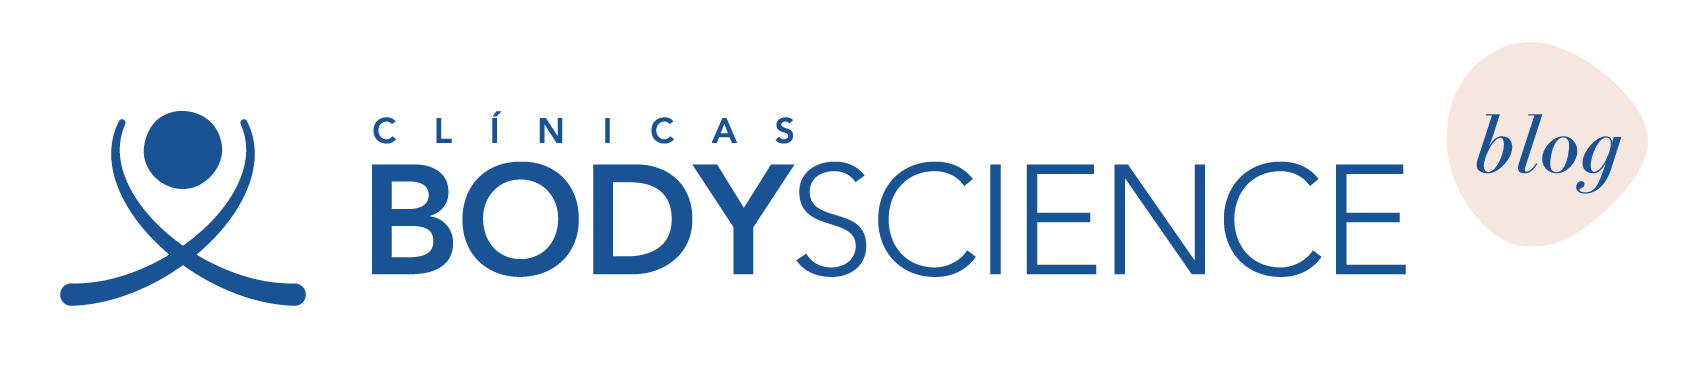 clinicas-bodyscience-logo